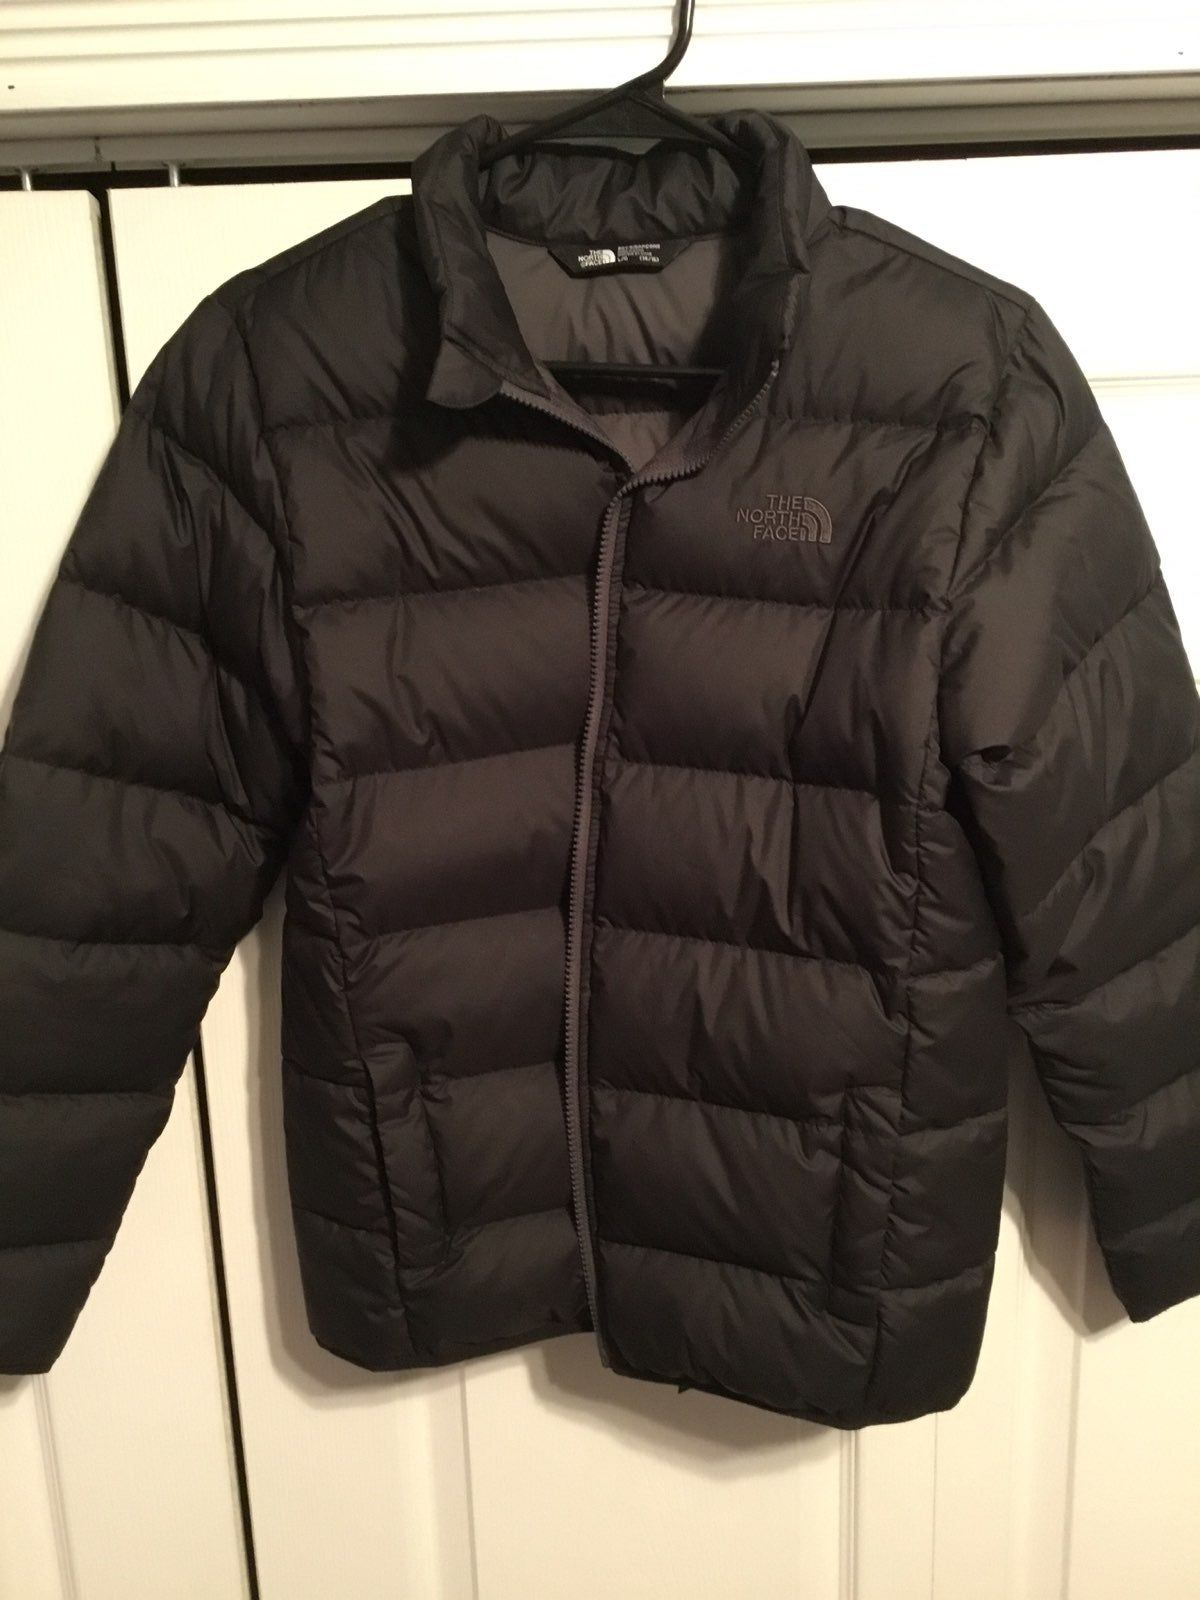 This Jacket Is New Without Tags This Boys Winter Jacket Is Packed With 550 Fill Down For Straight Forward Re North Face Coat Jackets Winter Jackets [ 1600 x 1200 Pixel ]